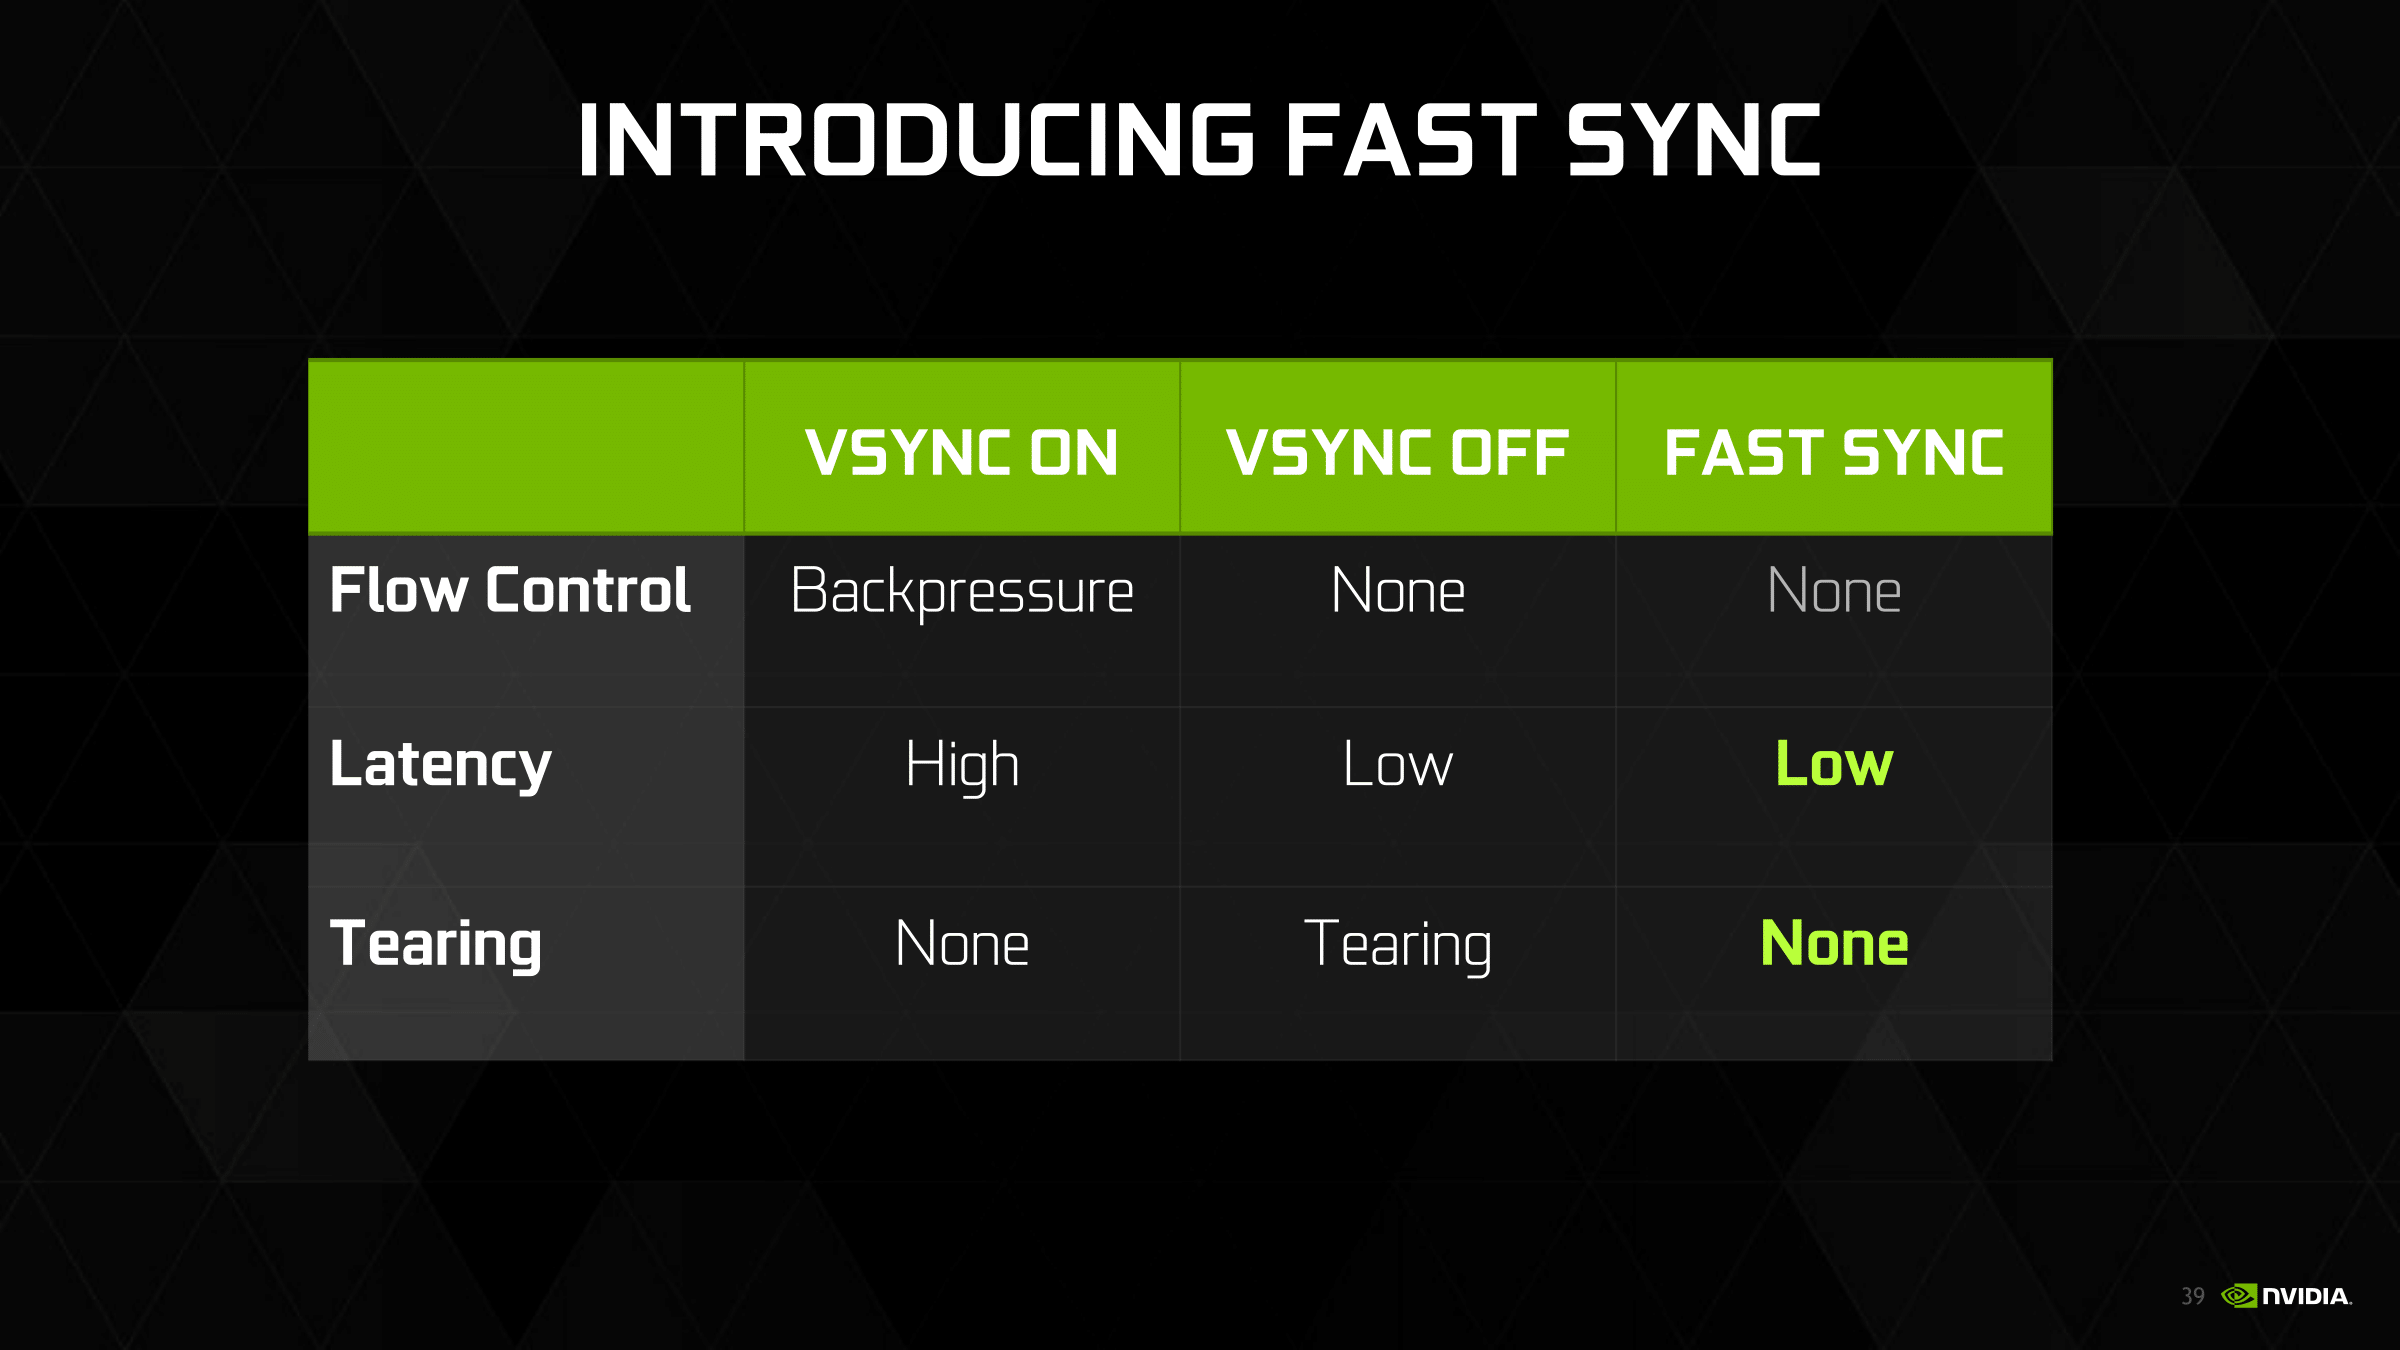 Fast Sync & SLI Updates: Less Latency, Fewer GPUs - The